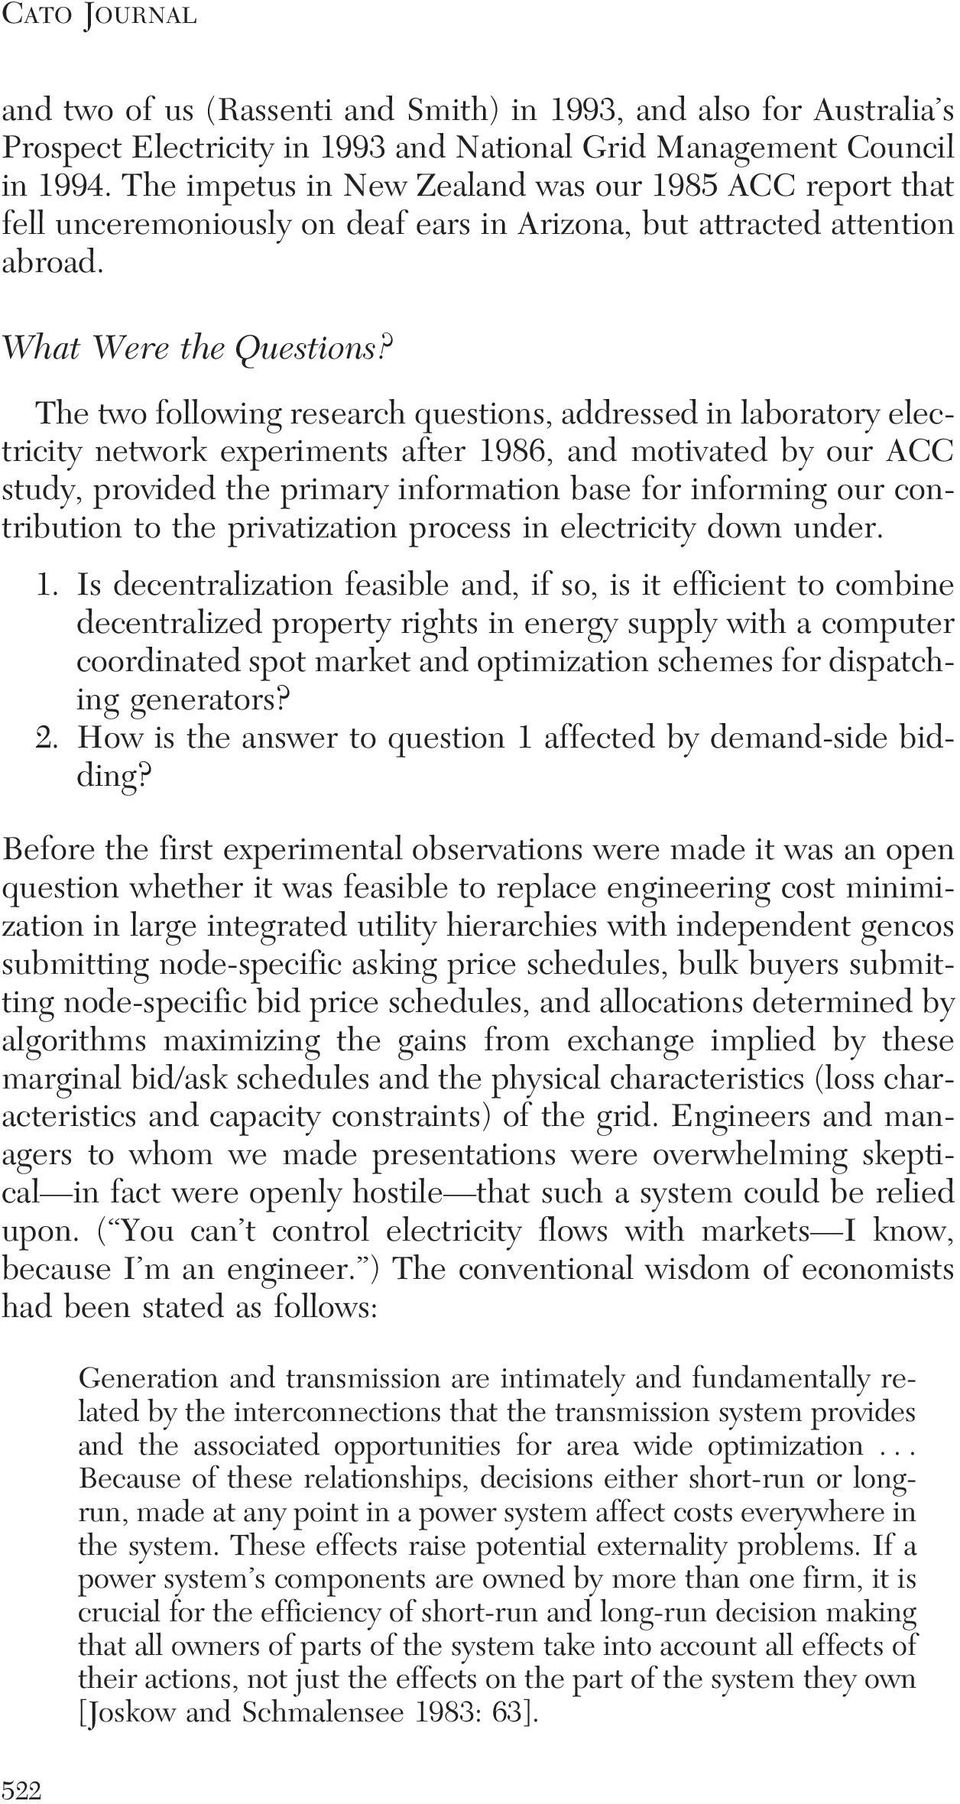 The two following research questions, addressed in laboratory electricity network experiments after 1986, and motivated by our ACC study, provided the primary information base for informing our